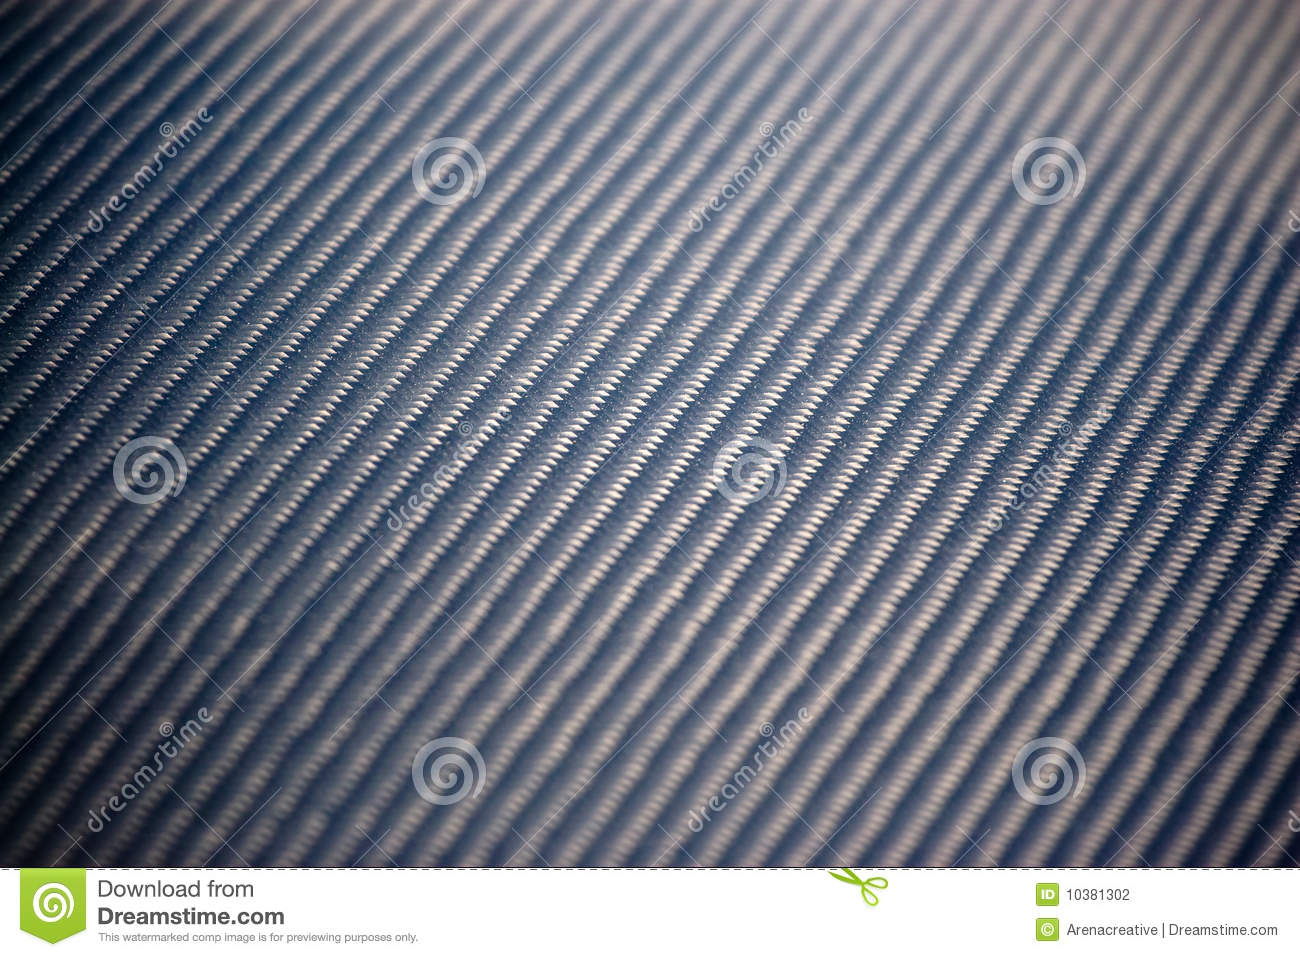 Real carbon fiber stock photography image 10381302 - Real carbon fiber wallpaper ...